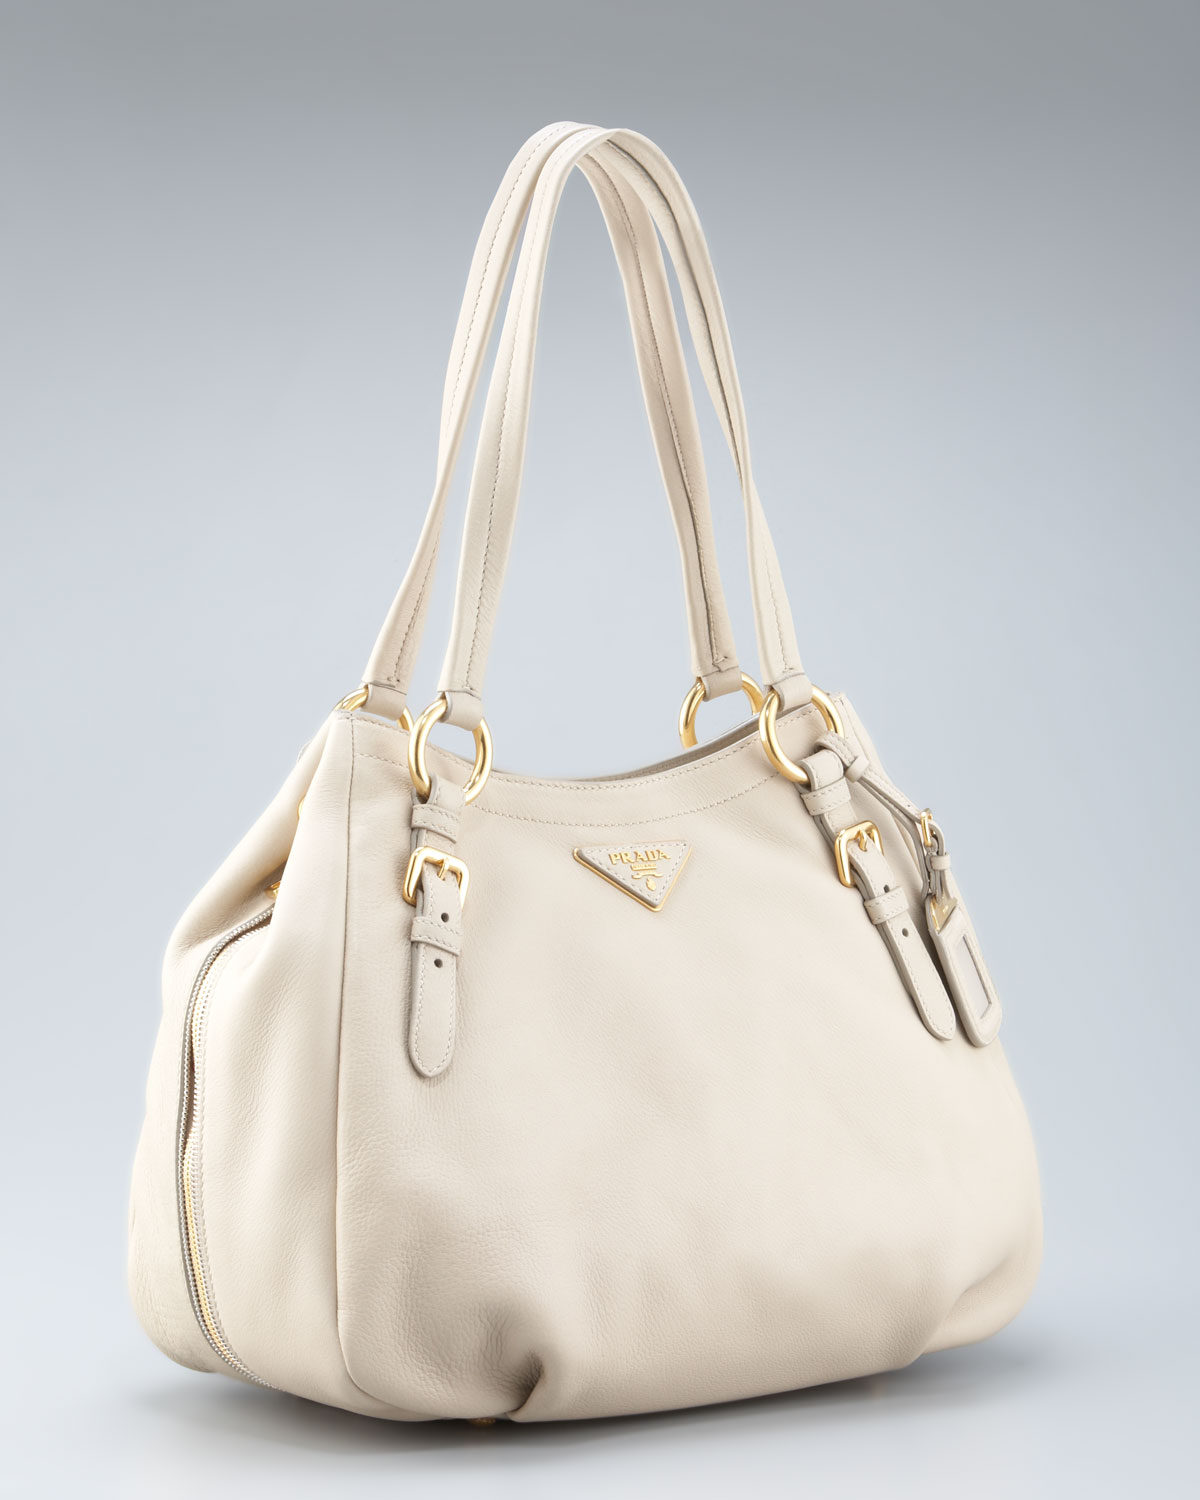 prada handbags for sale online - Prada Cervo Double-handle Hobo in Beige (ivory) | Lyst